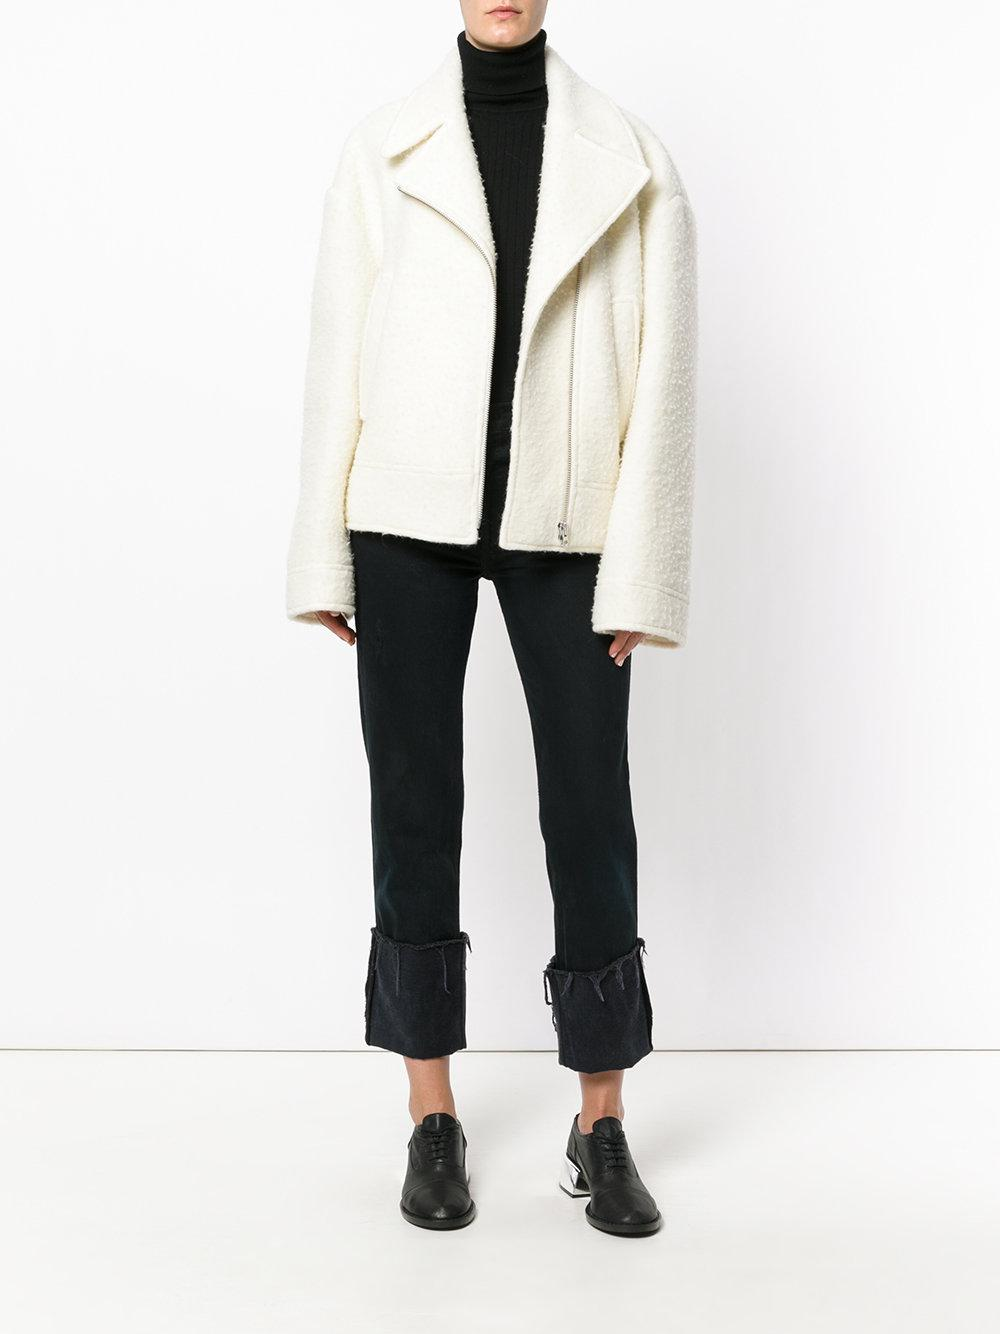 SUITS AND JACKETS - Sets Maison Martin Margiela Buy Cheap Shop Outlet Fake IyYqls3nWn